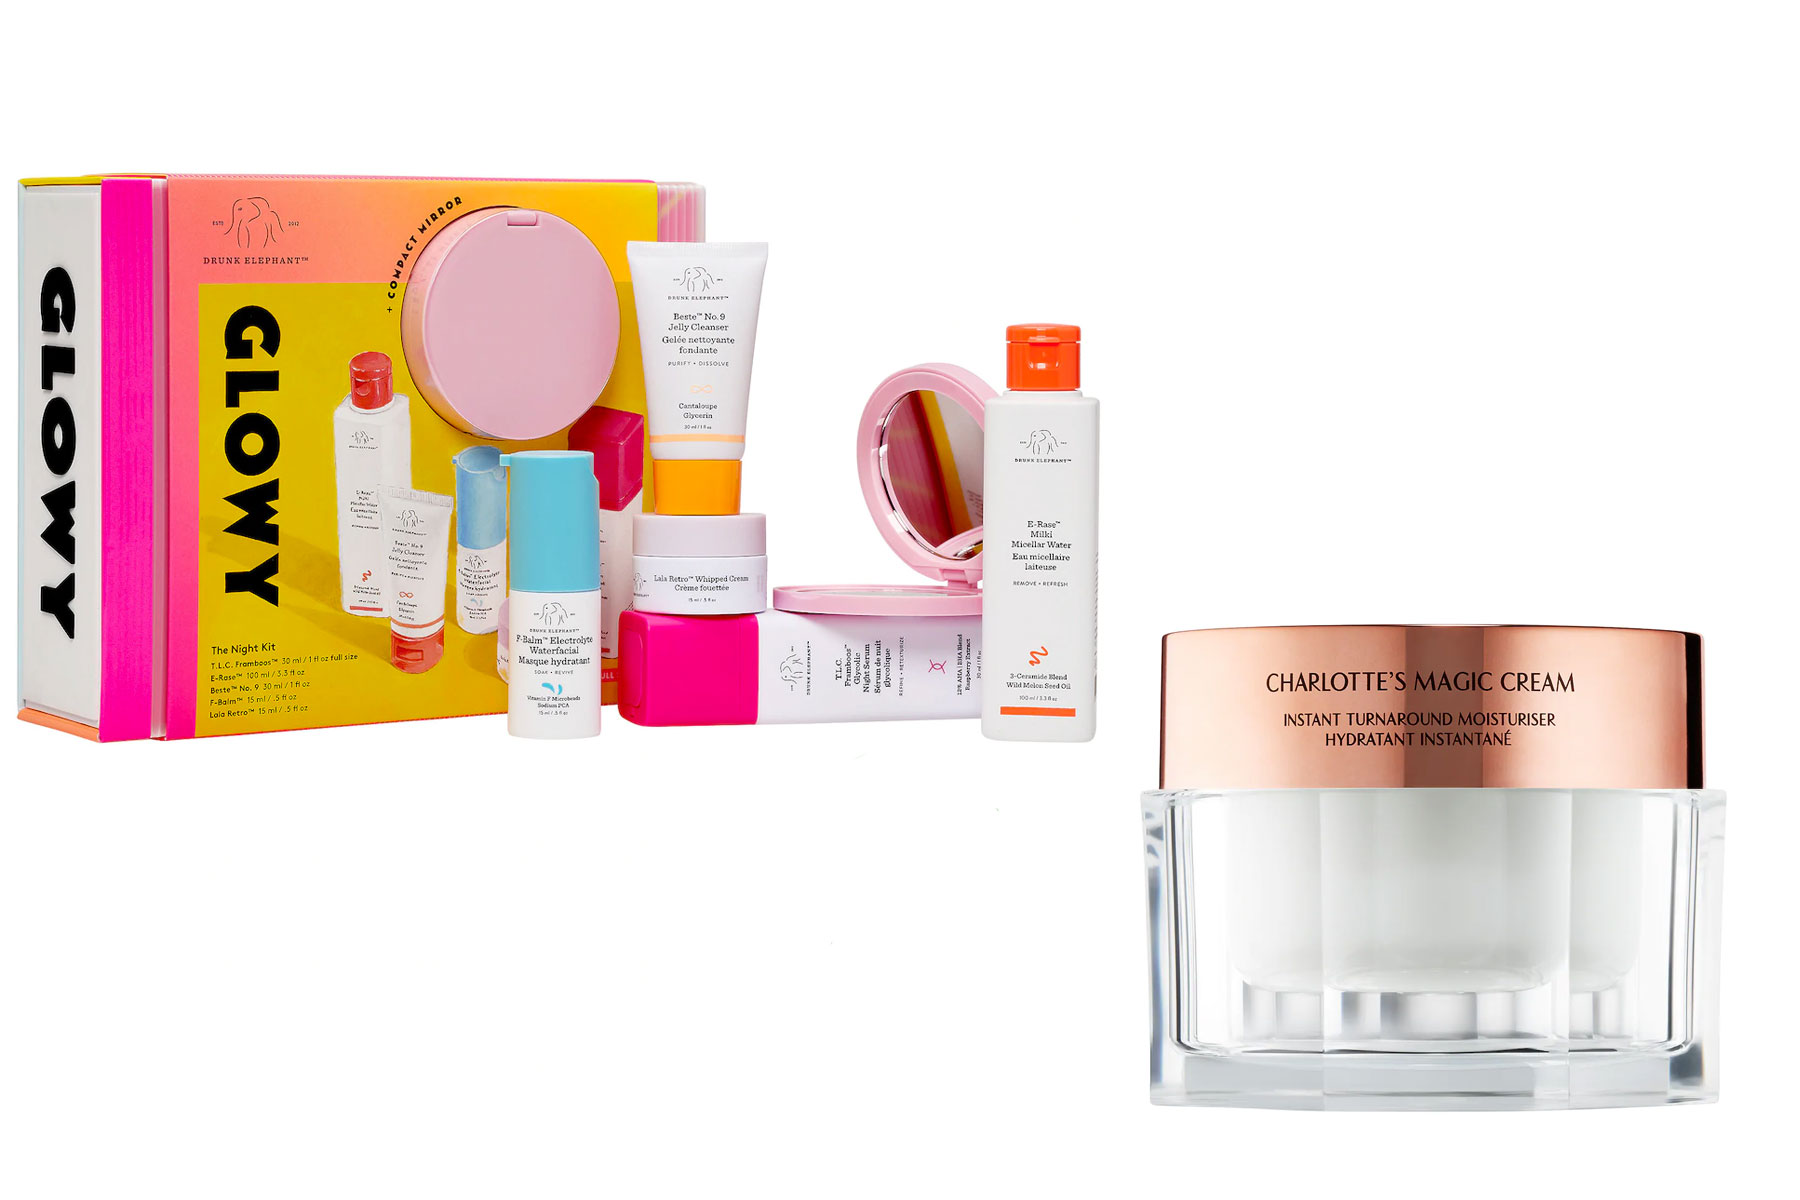 """From mask-induced breakouts to dry, stressed-out skin, 2020 has been hard on our faces. Since we started working from home, I've focused more on skincare and (a little bit) less on makeup, so I have tested tons of products. This year, I'll be gifting friends and family my tried-and-true, favorite skincare products. Drunk Elephant is one of my favorite skincare brands, and their holiday kits featuring full-size products offer great deals, so I always grab one for my mom and one for myself. I also love Charlotte Tilbury's Magic Cream for my friends dealing with dry skin — it's super rich (perfect for winter), and its luxe packaging makes it super gift-able,"" — Elizabeth Rhodes, Associate Digital EditorTo buy: (left) sephora.com, $98; (right) sephora.com, from $29"